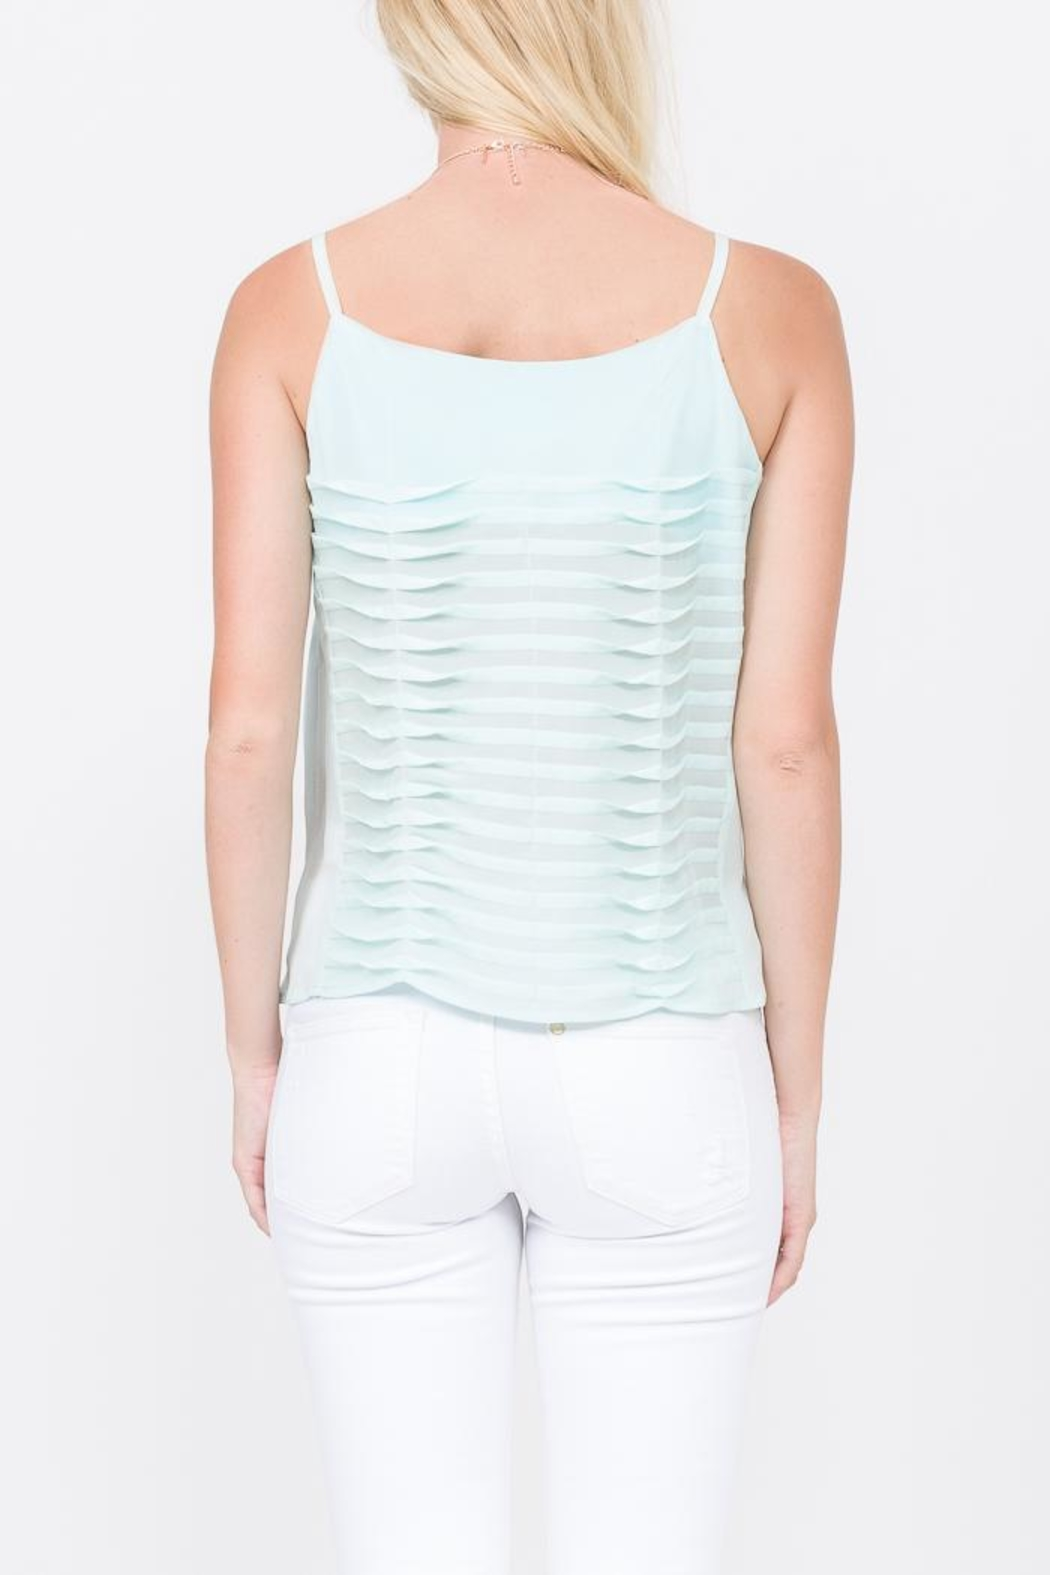 QUINN Lynn Wave Blouse - Side Cropped Image